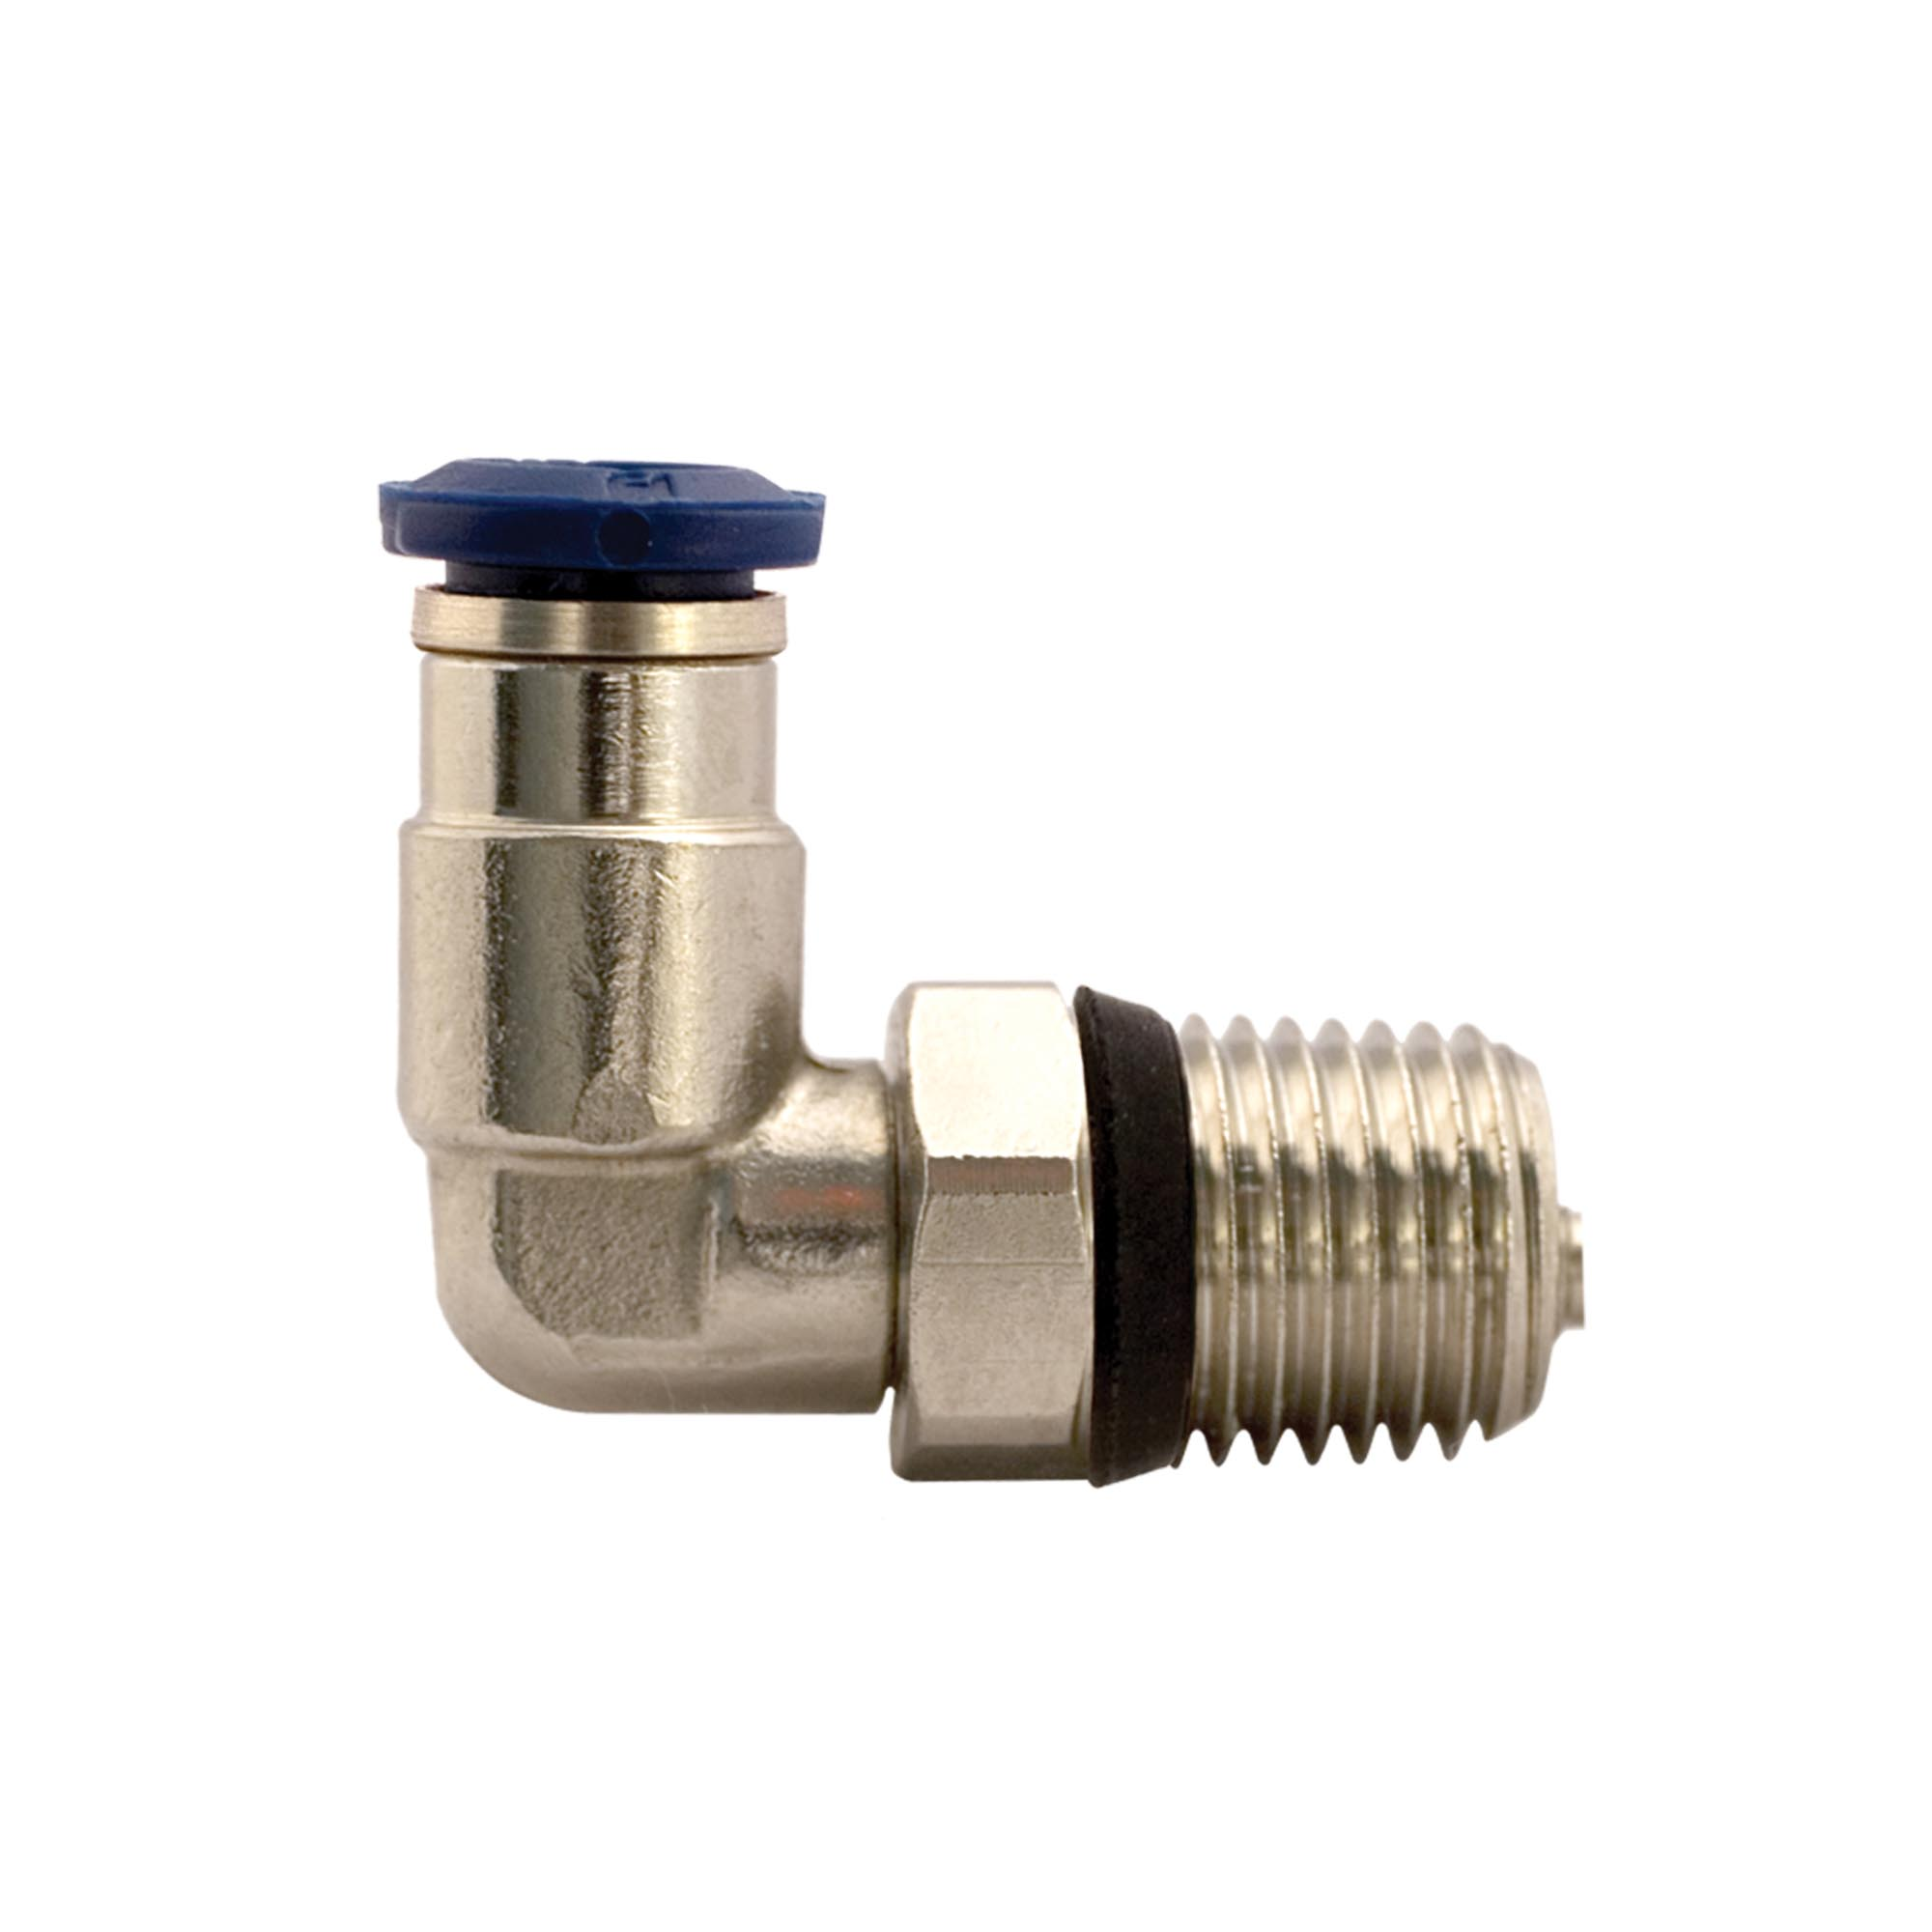 Model 900785 Push-In Swivel Elbow Connector, 3/8 Tube